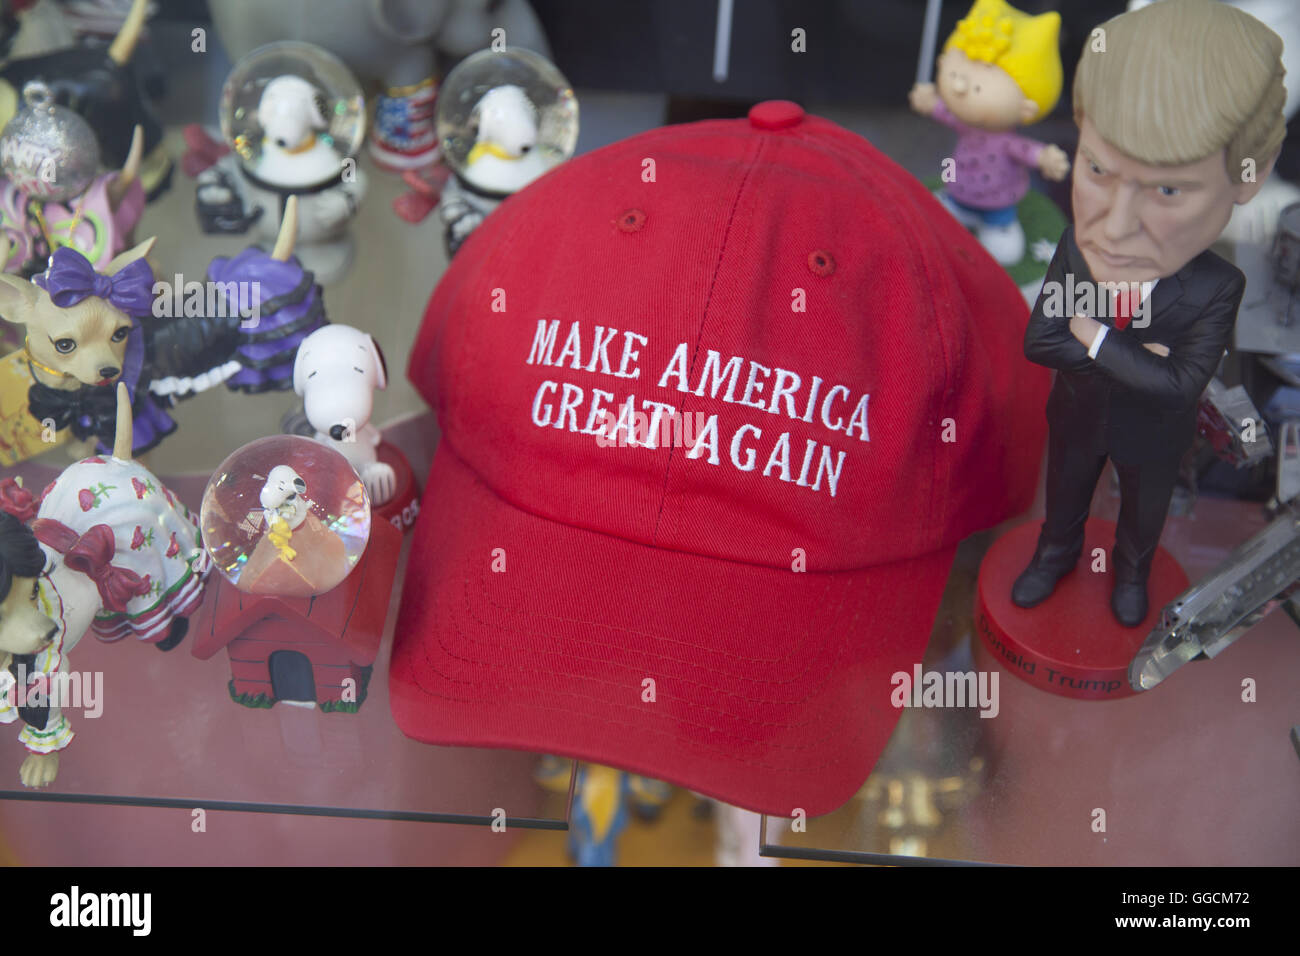 Caricature of Donald Trump with hisiconic red hat at a souvenir shope in New York City. - Stock Image